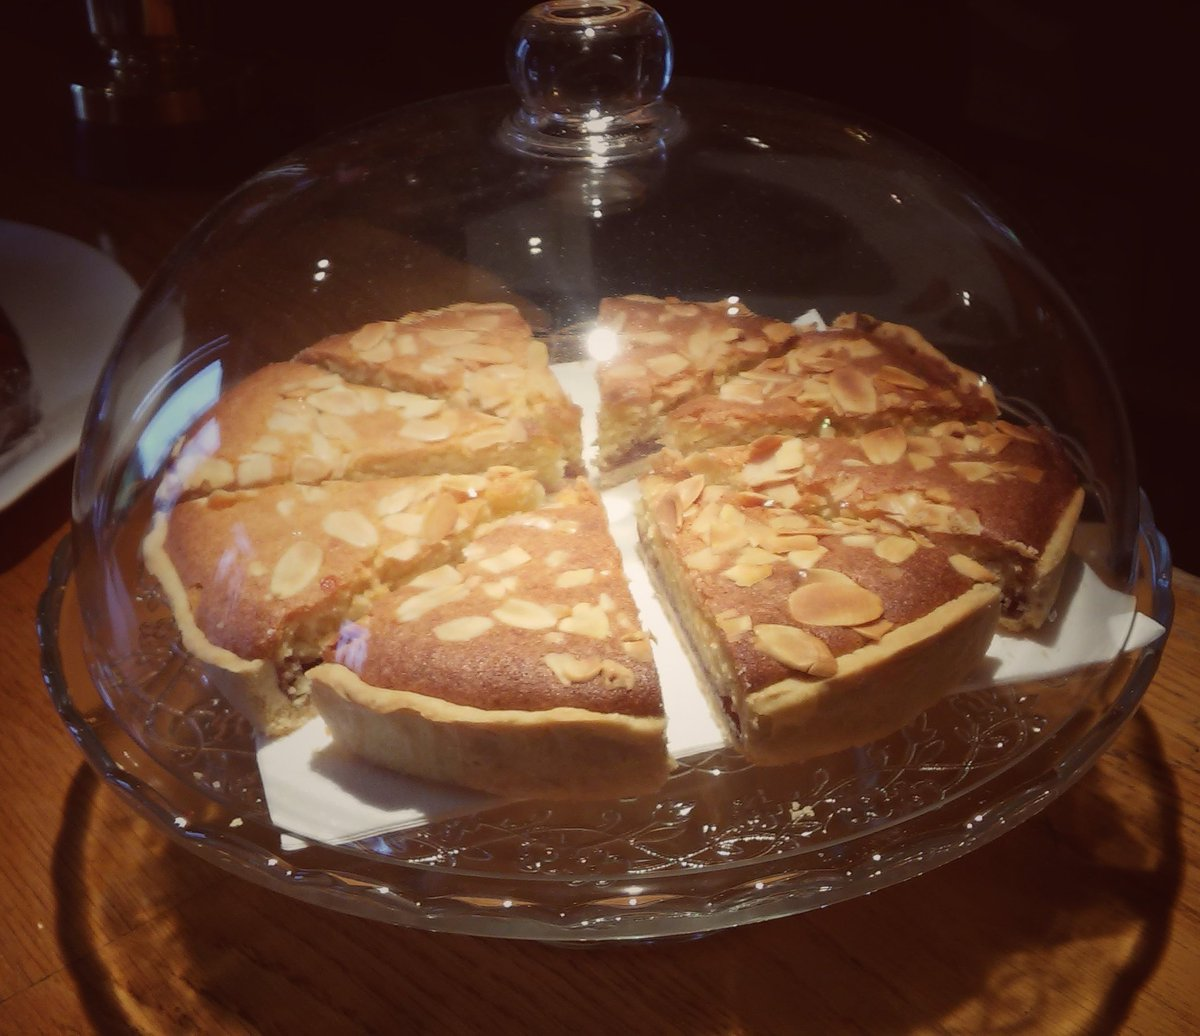 The Bakewell Tart is back! @KevWotton #Homemade #TreatYourself #Clubhouse <br>http://pic.twitter.com/TTPIOKBYcs